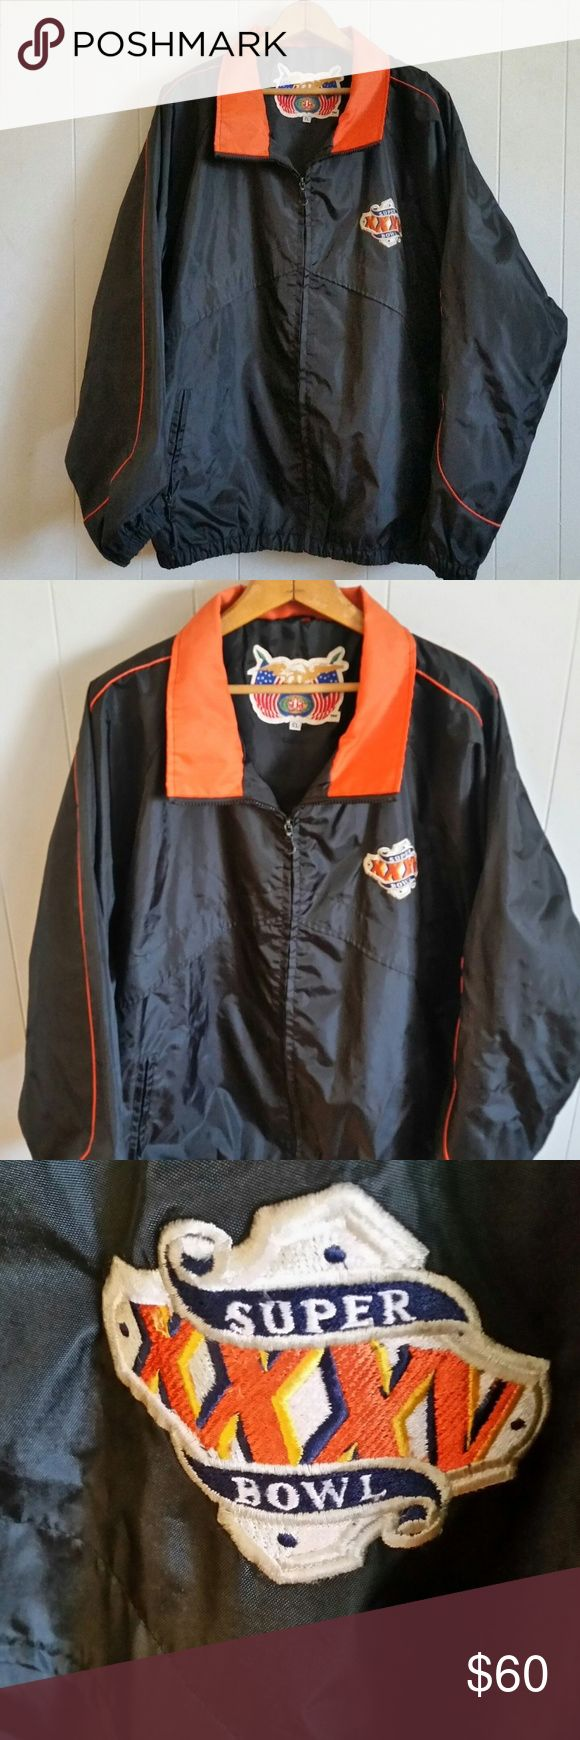 "XL Men Jeff Hamilton Super Bowl XXXV Jacket, XL Men Jeff Hamilton Super Bowl XXXV Jacket, Rain, Wind Tampa 2001  Arm Pit to Arm Pit 27"" and Length 29.5"" Jeff Hamilton Jackets & Coats Windbreakers"